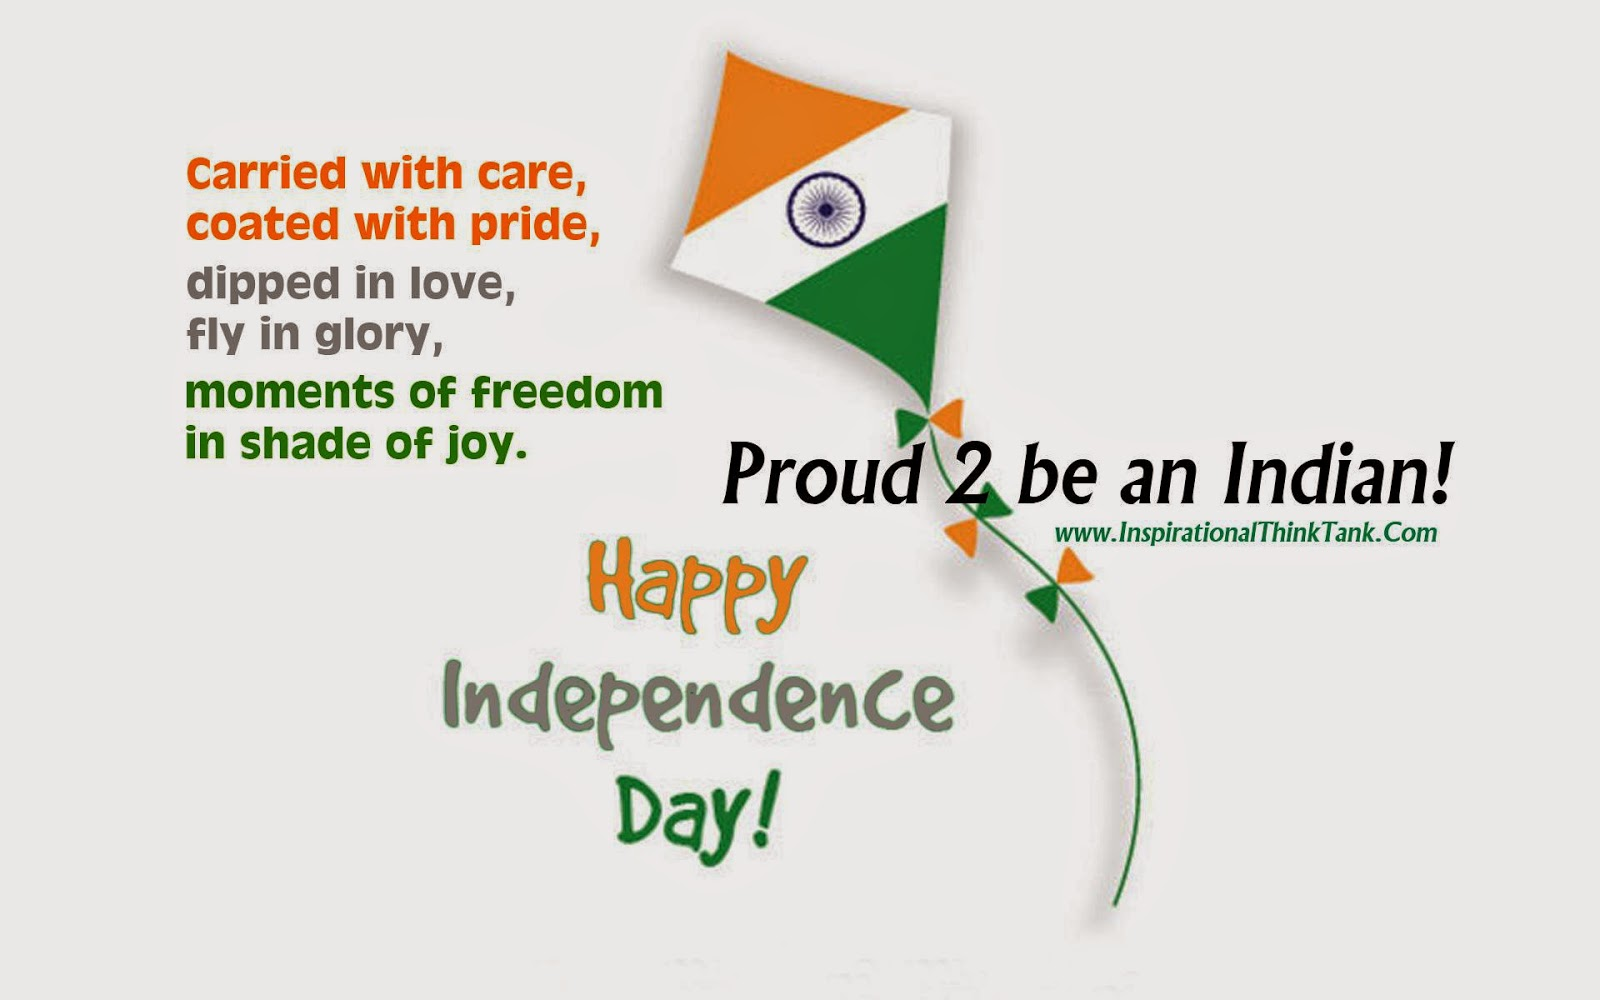 Happy Independence Day - Proud 2 be an Indian!